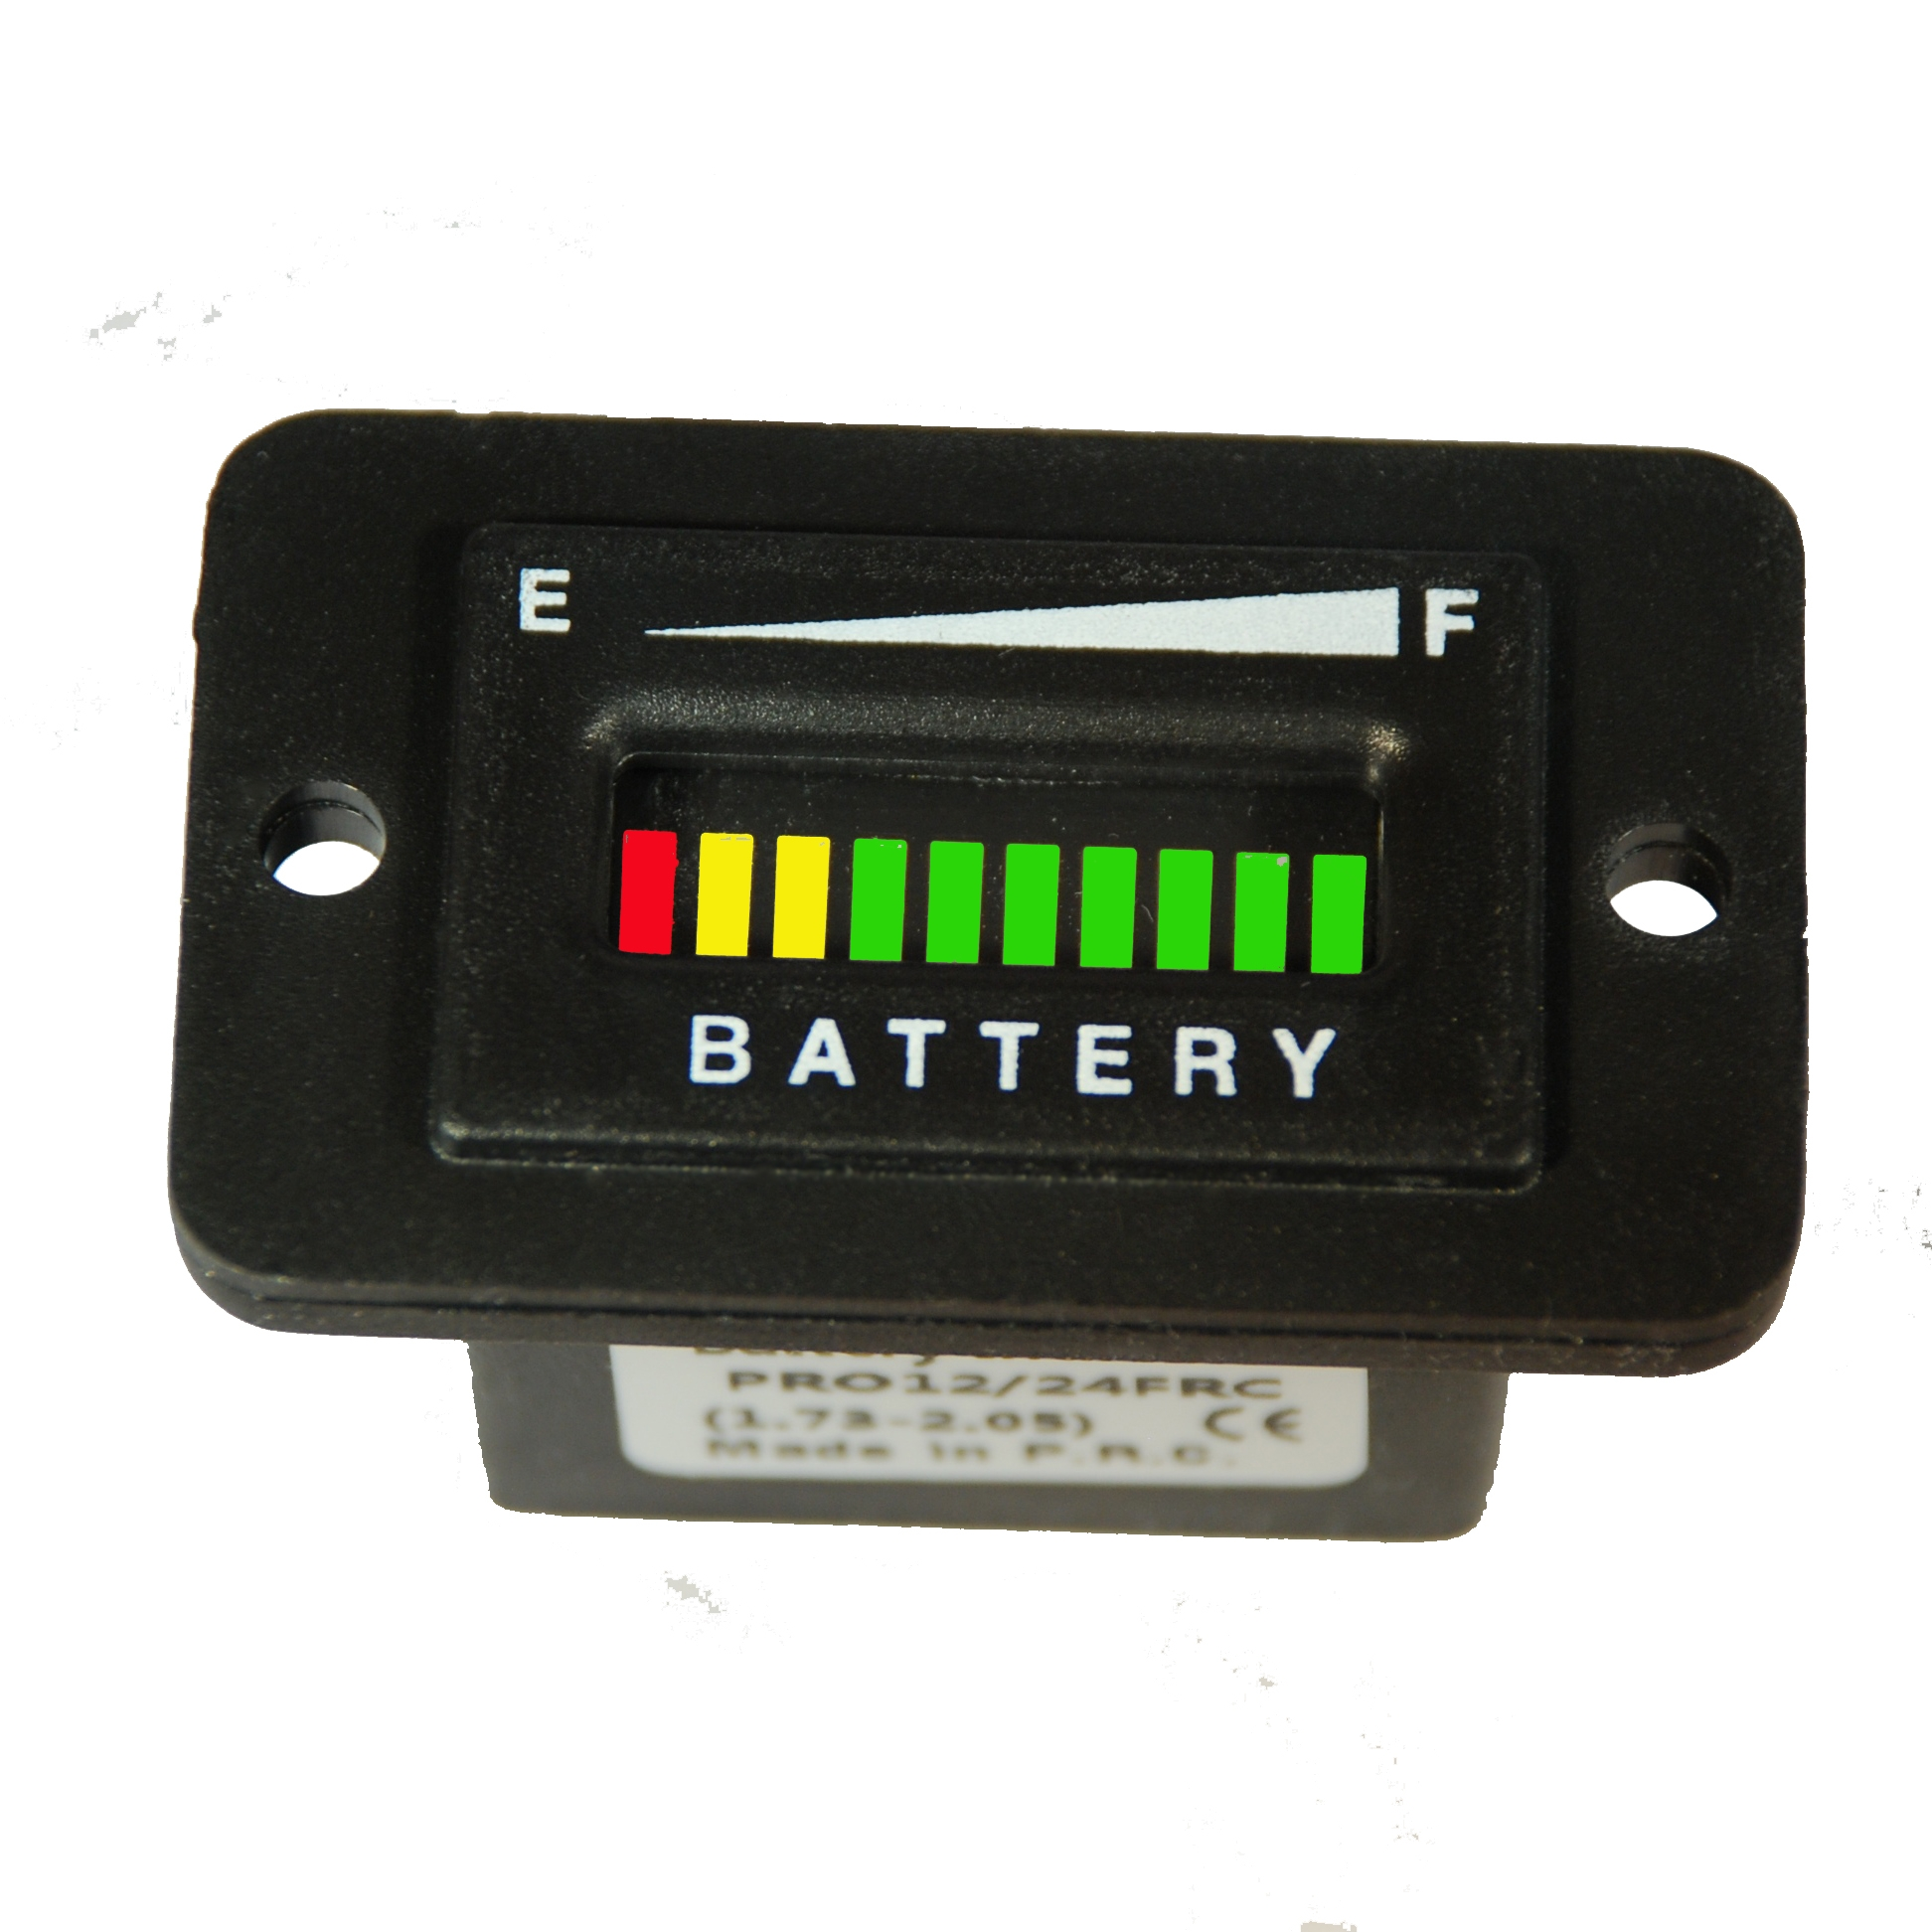 Rectangular Battery Meter